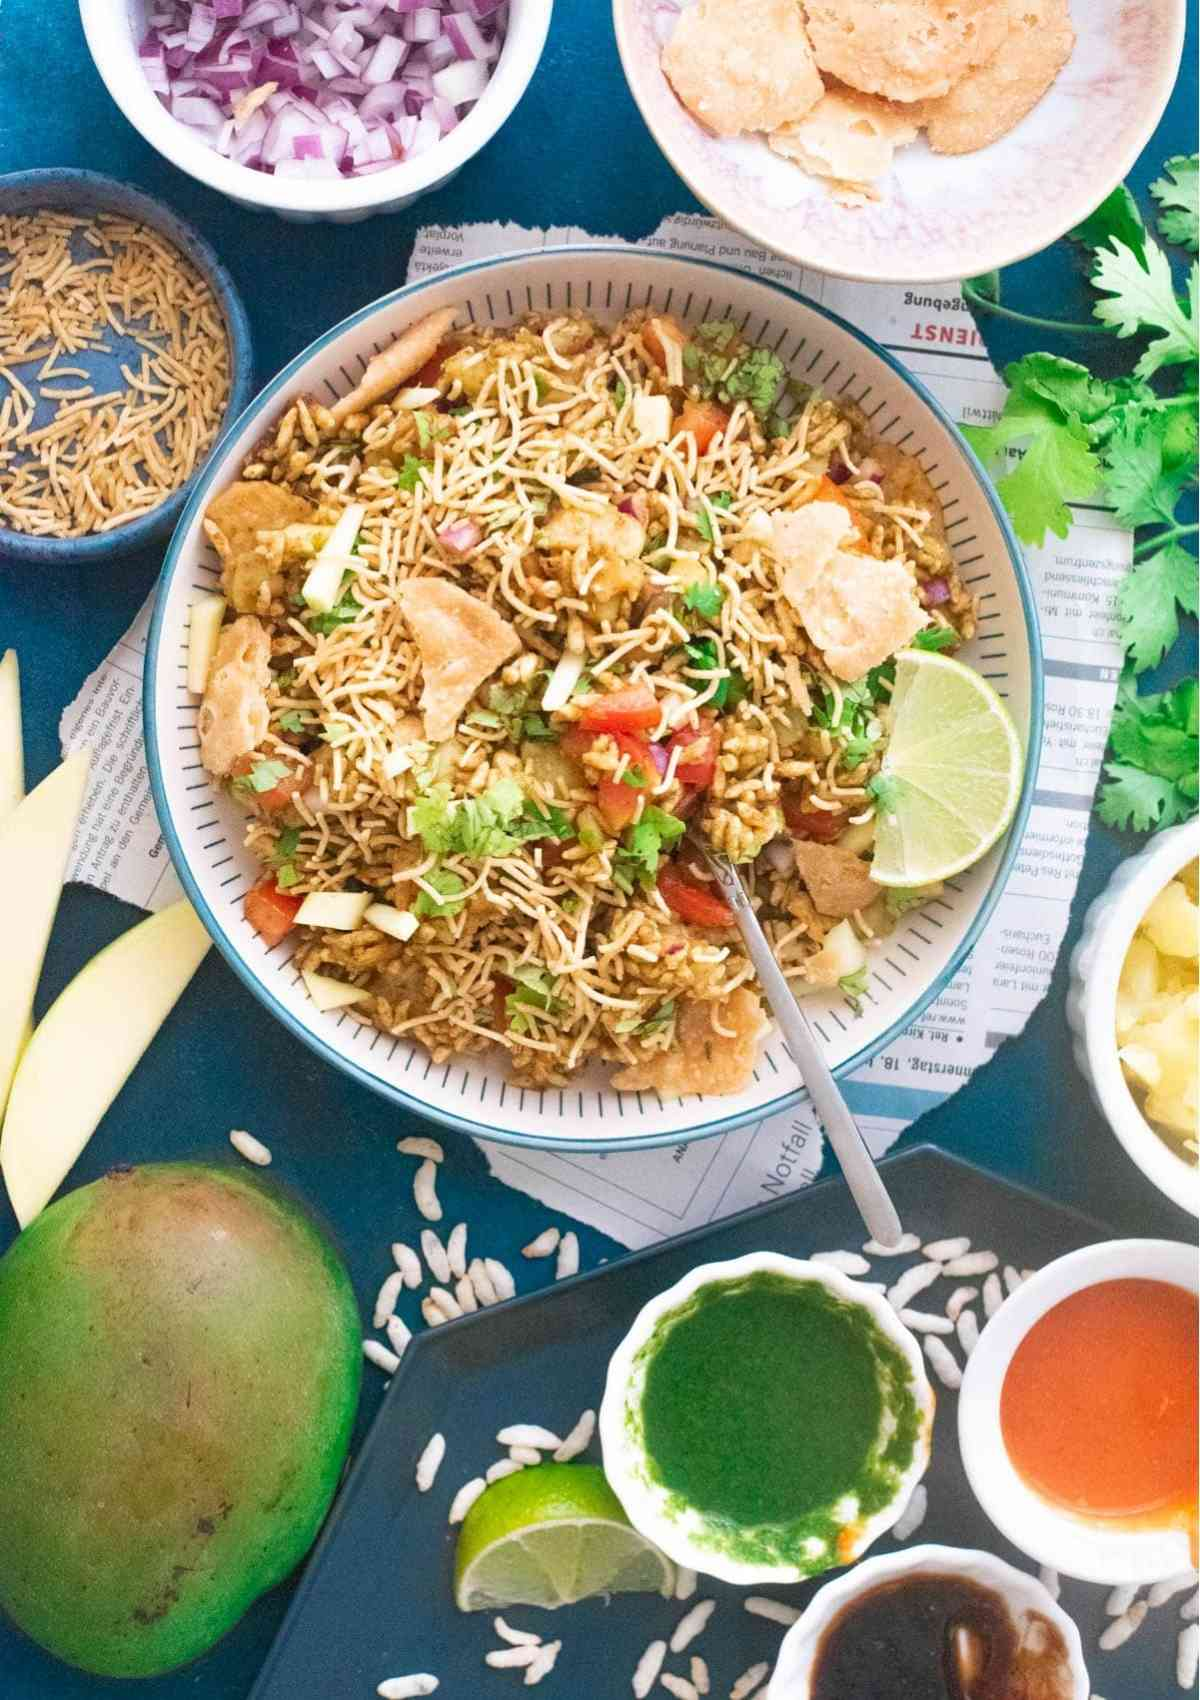 Bhel puri on a plate surrounded by ingredients to make it